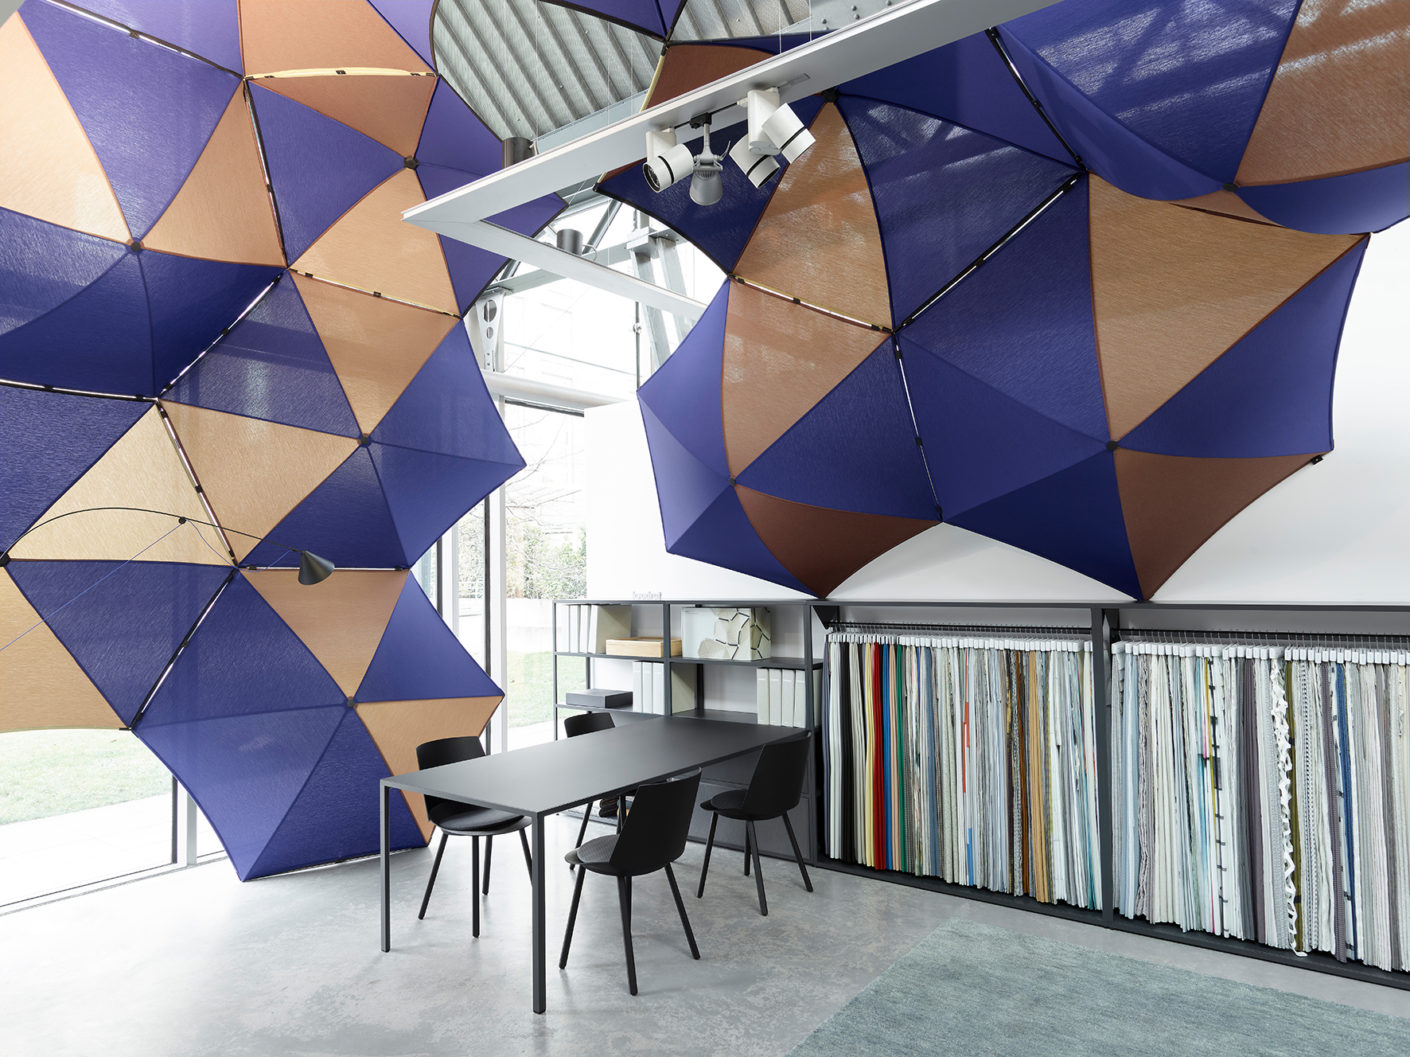 """Image gallery """"Slot"""" by Stefan Diez from """"Nitto"""" by Alfredo Häberli for Kvadrat"""